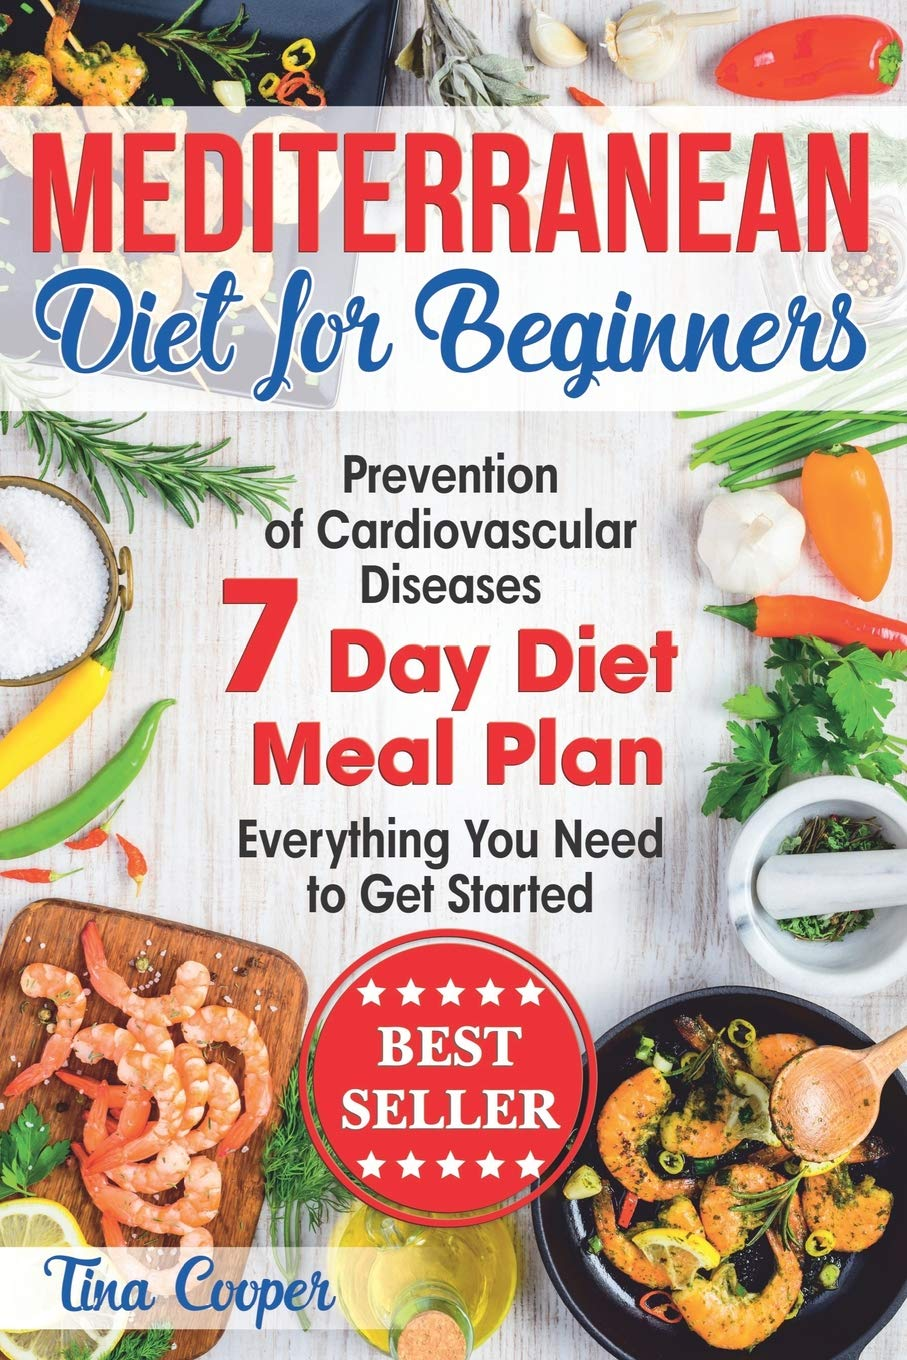 Mediterranean Diet for Beginners: The Complete Guide - Healthy and Easy Mediterranean Diet Recipes for Weight Loss - Prevention of Cardiovascular Diseases - Everything You Need to Get Started 1